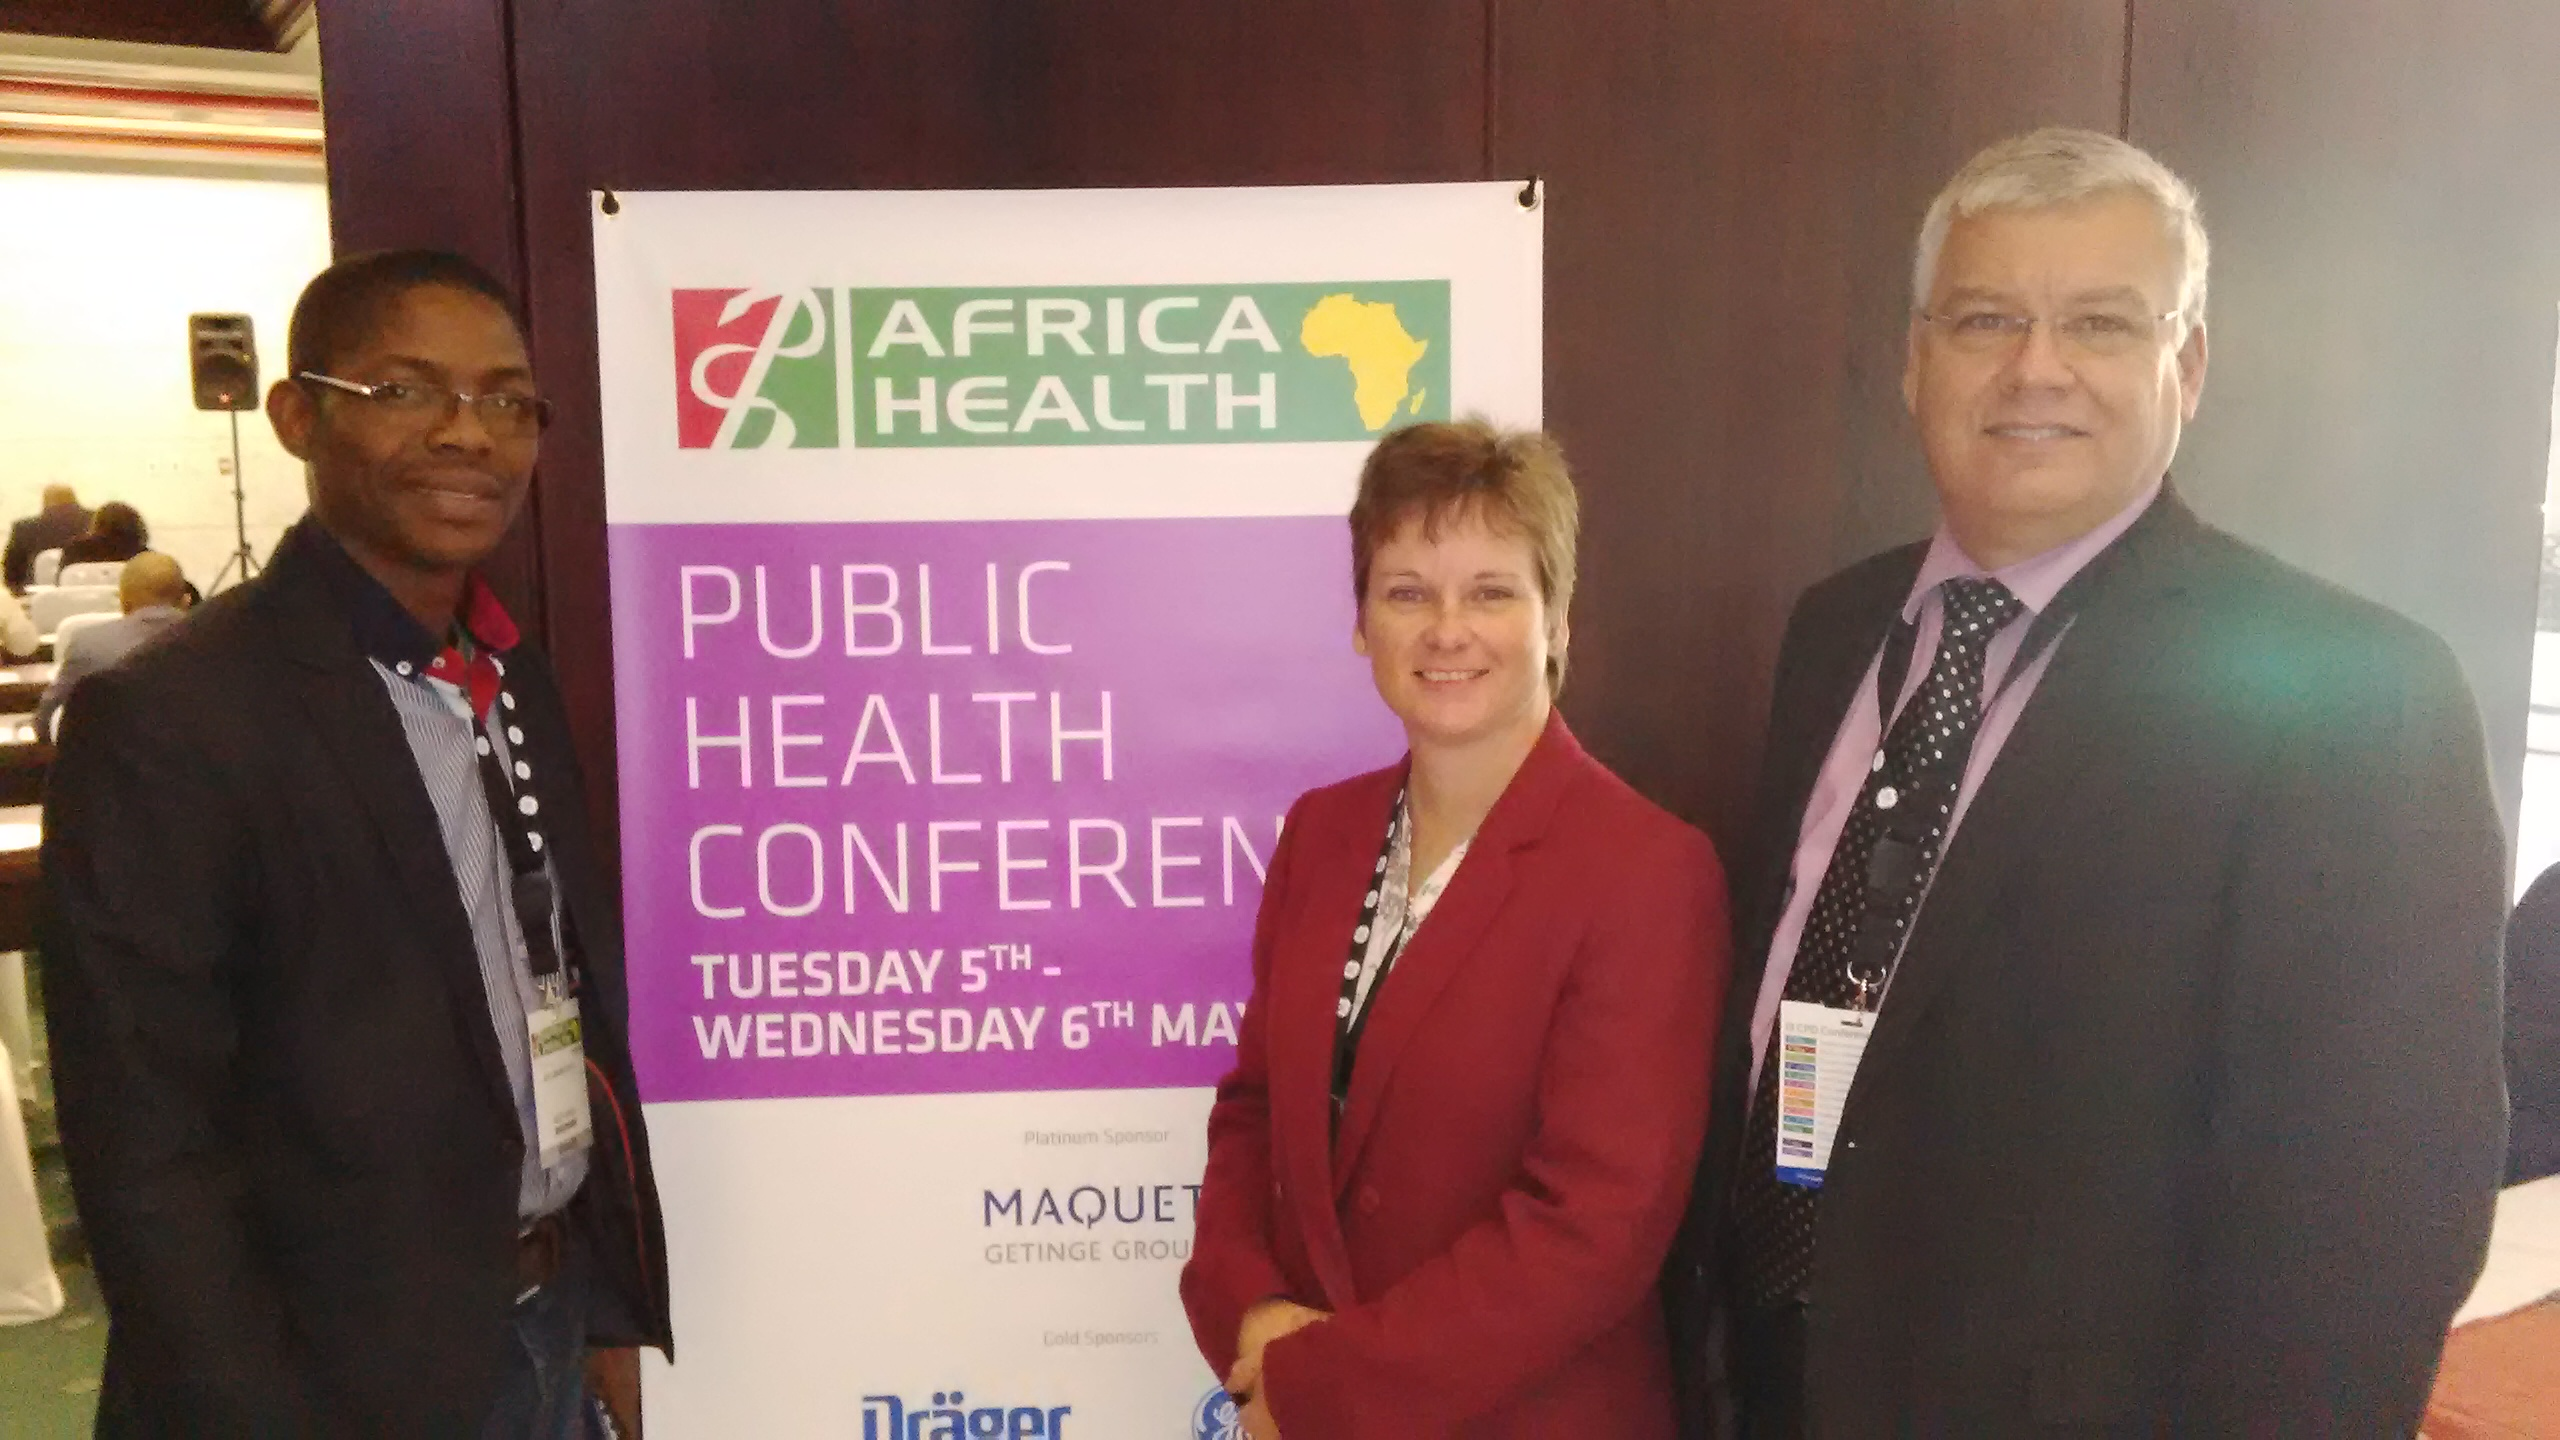 South Africa | GGHH Members Participate in Public Health Conference